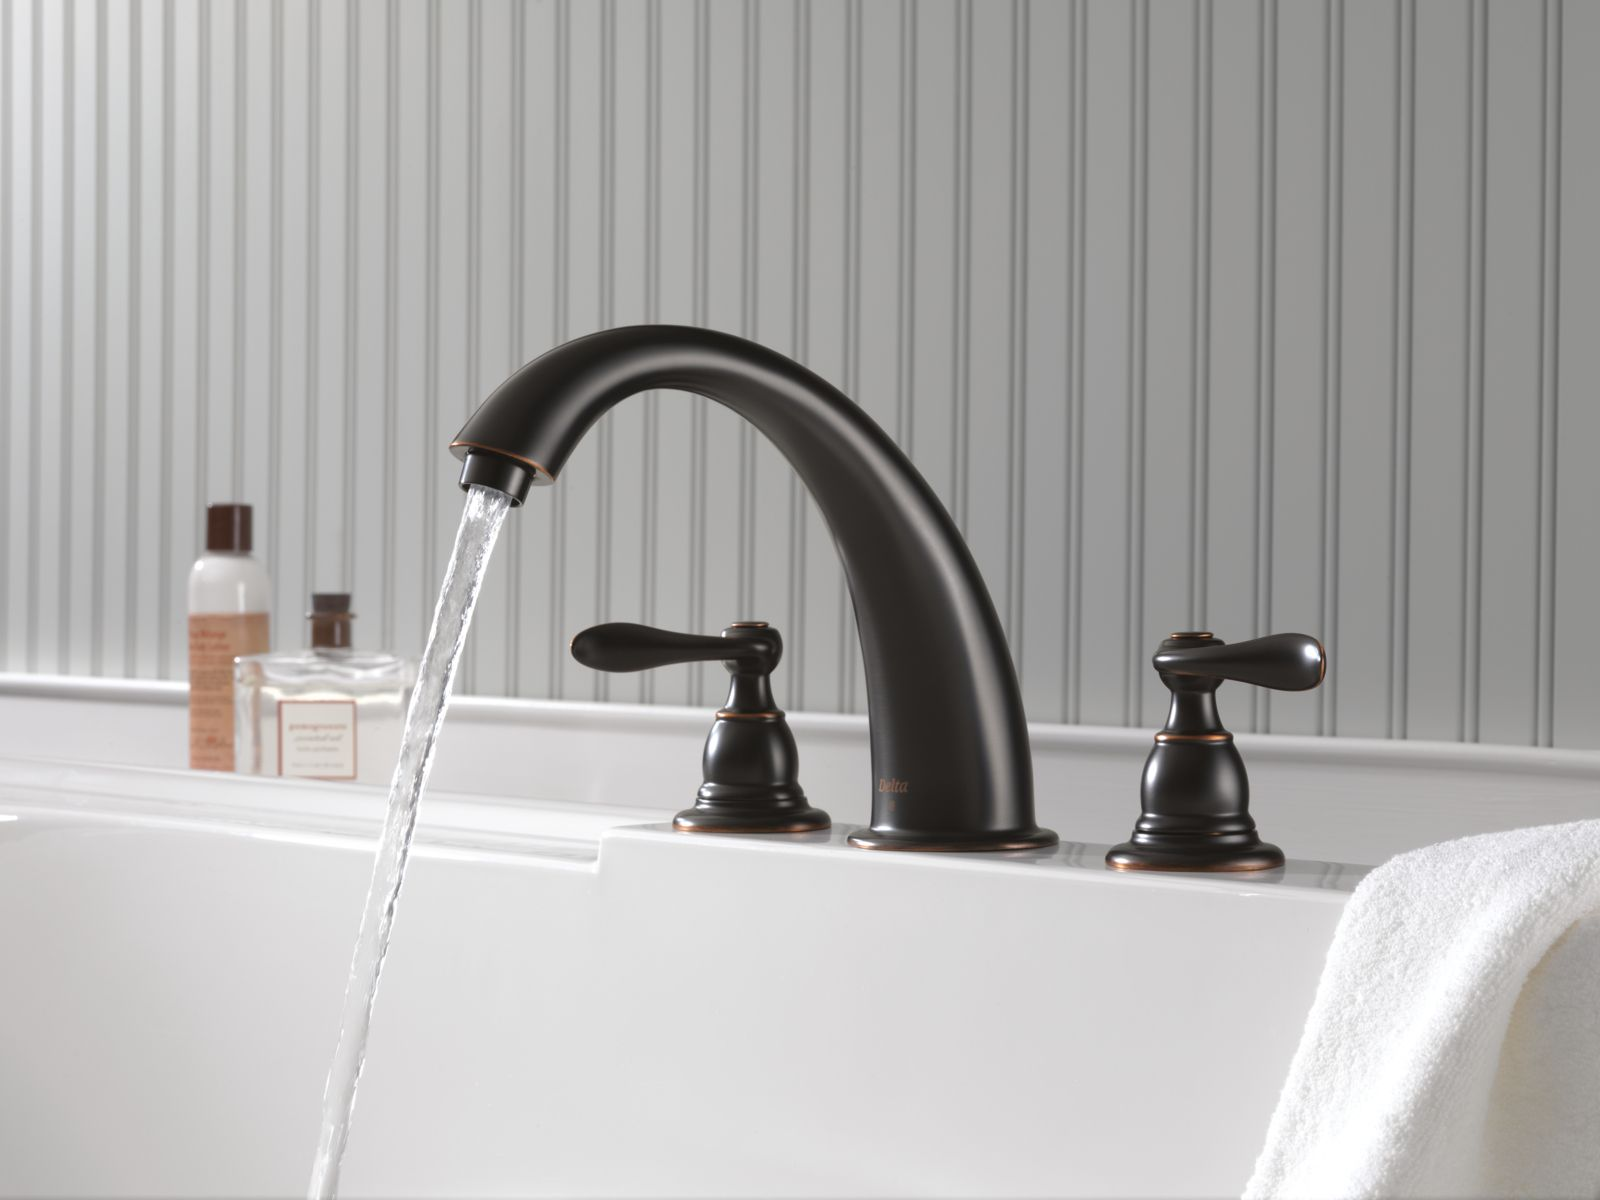 Awesome Delta Windemere Bathroom Faucet Lovely 44 For Interior Designing Home Ideas With